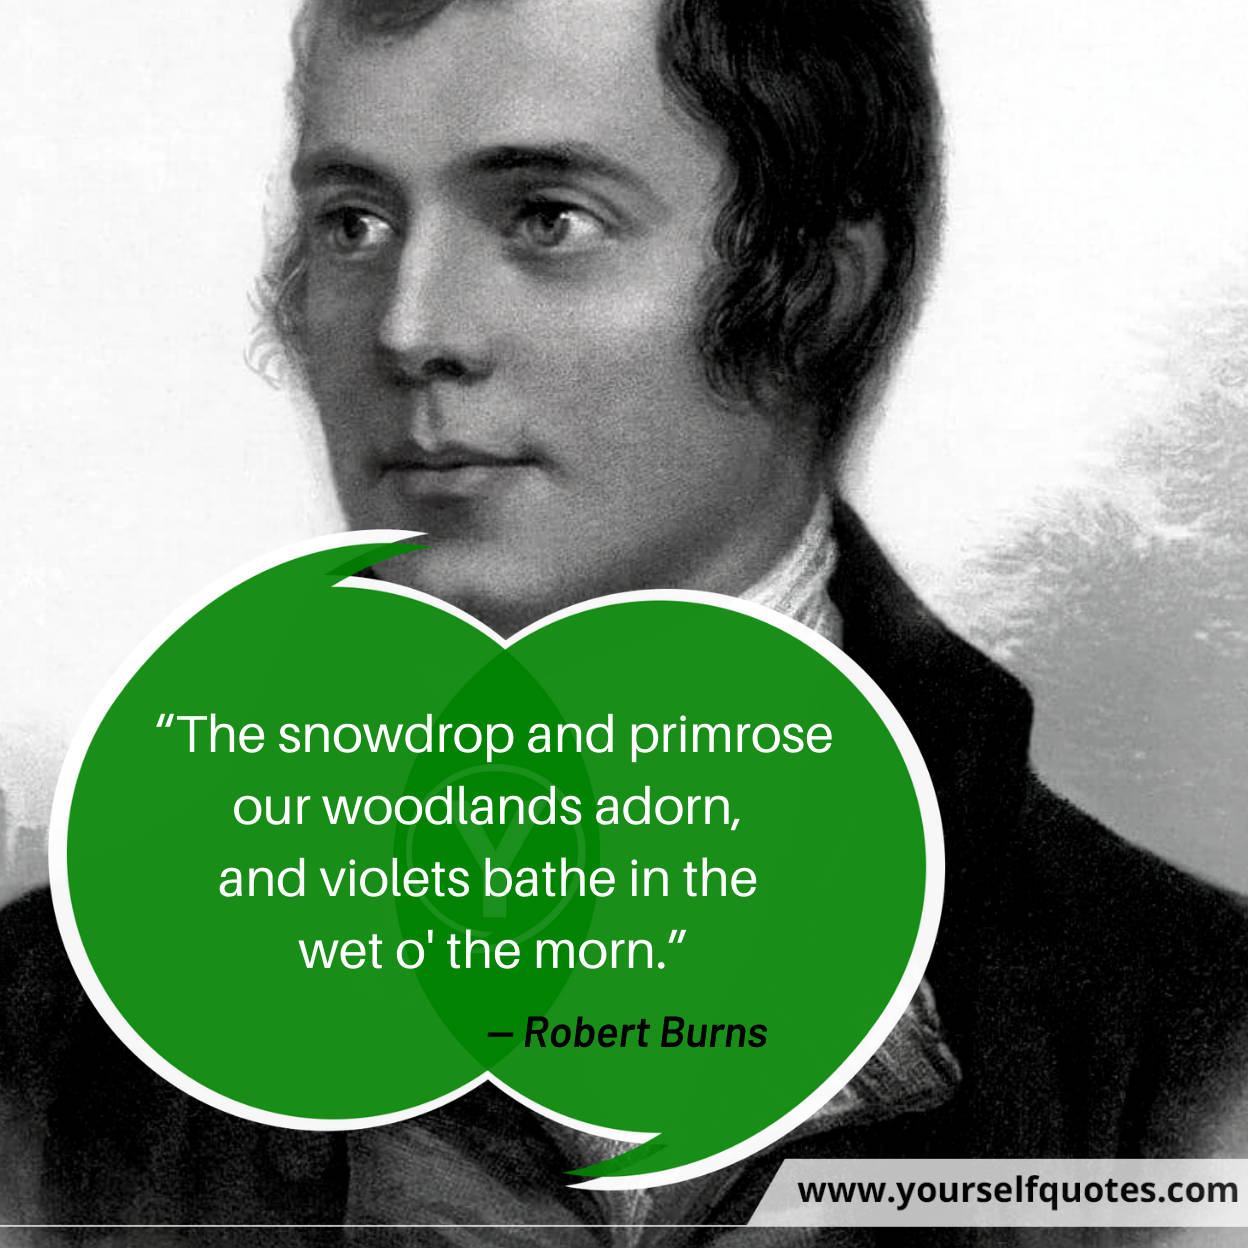 Quotes by Robert Burns